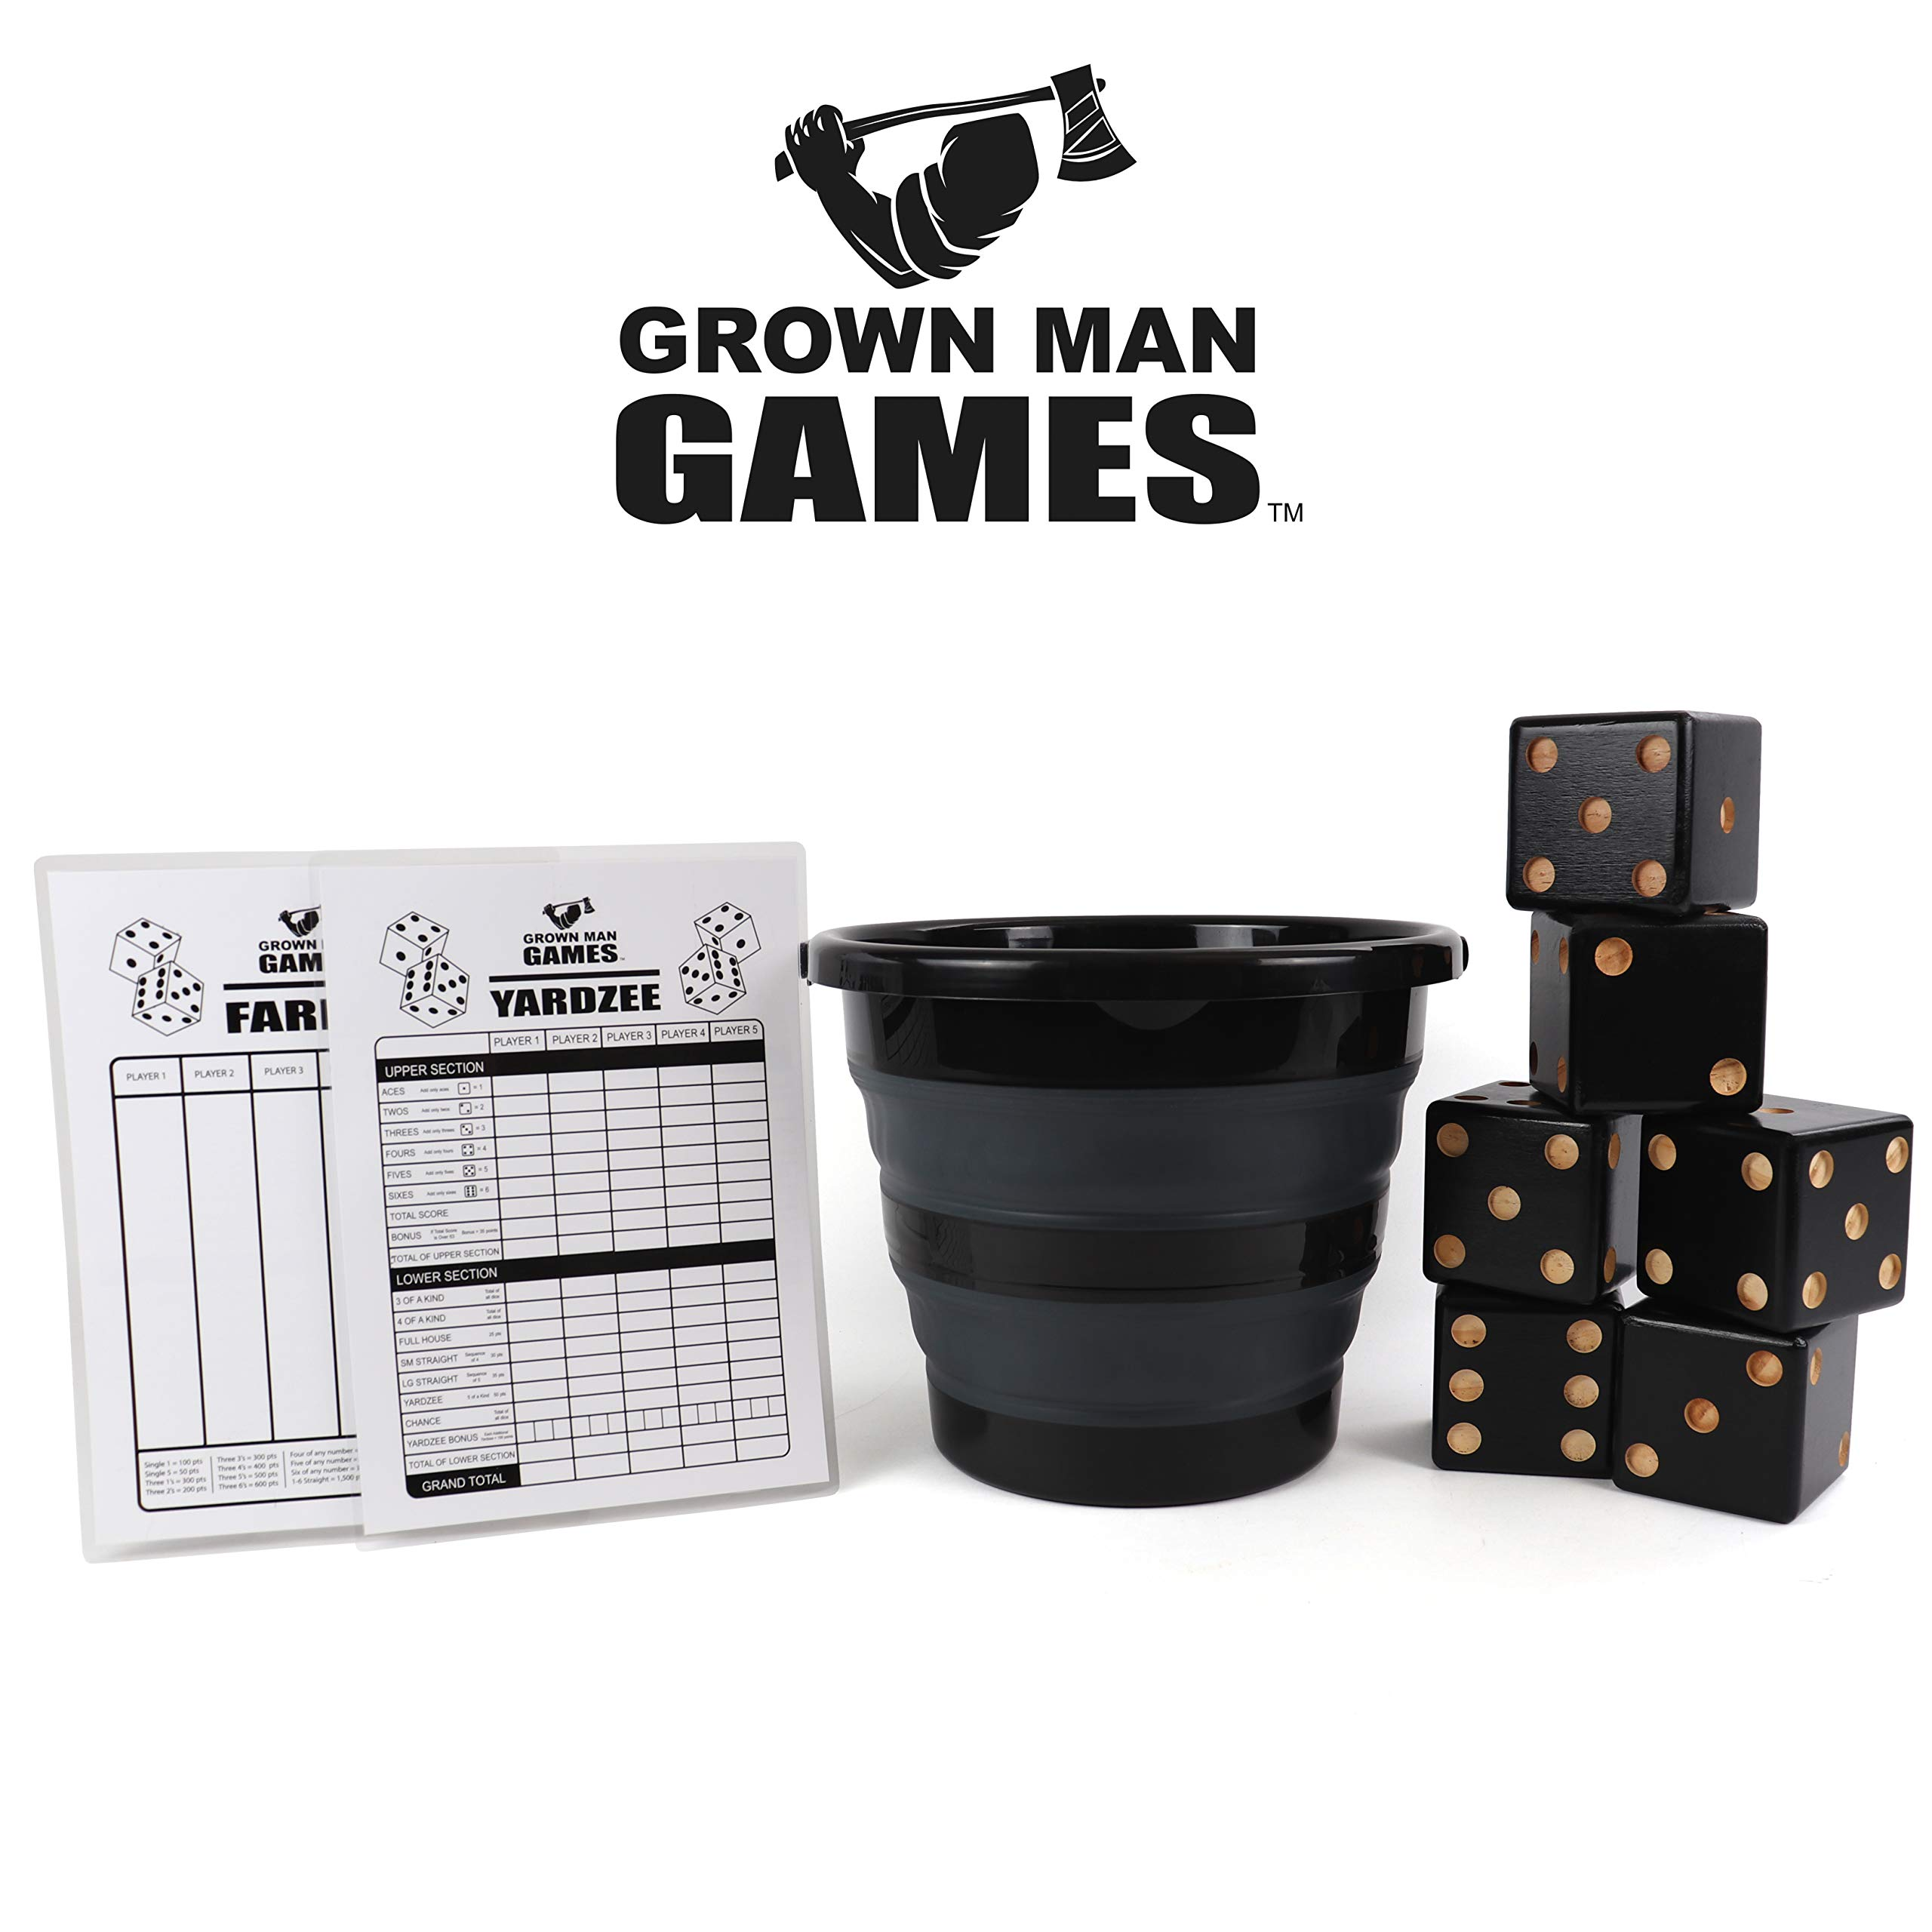 Grown Man Games Yard Dice - Yardzee - Yard Farkle/Yardkle - Large Lawn Dice - Giant Wooden Dice Lawn Game - Indoor/Outdoor Game for Kids and Adults by Grown Man Games